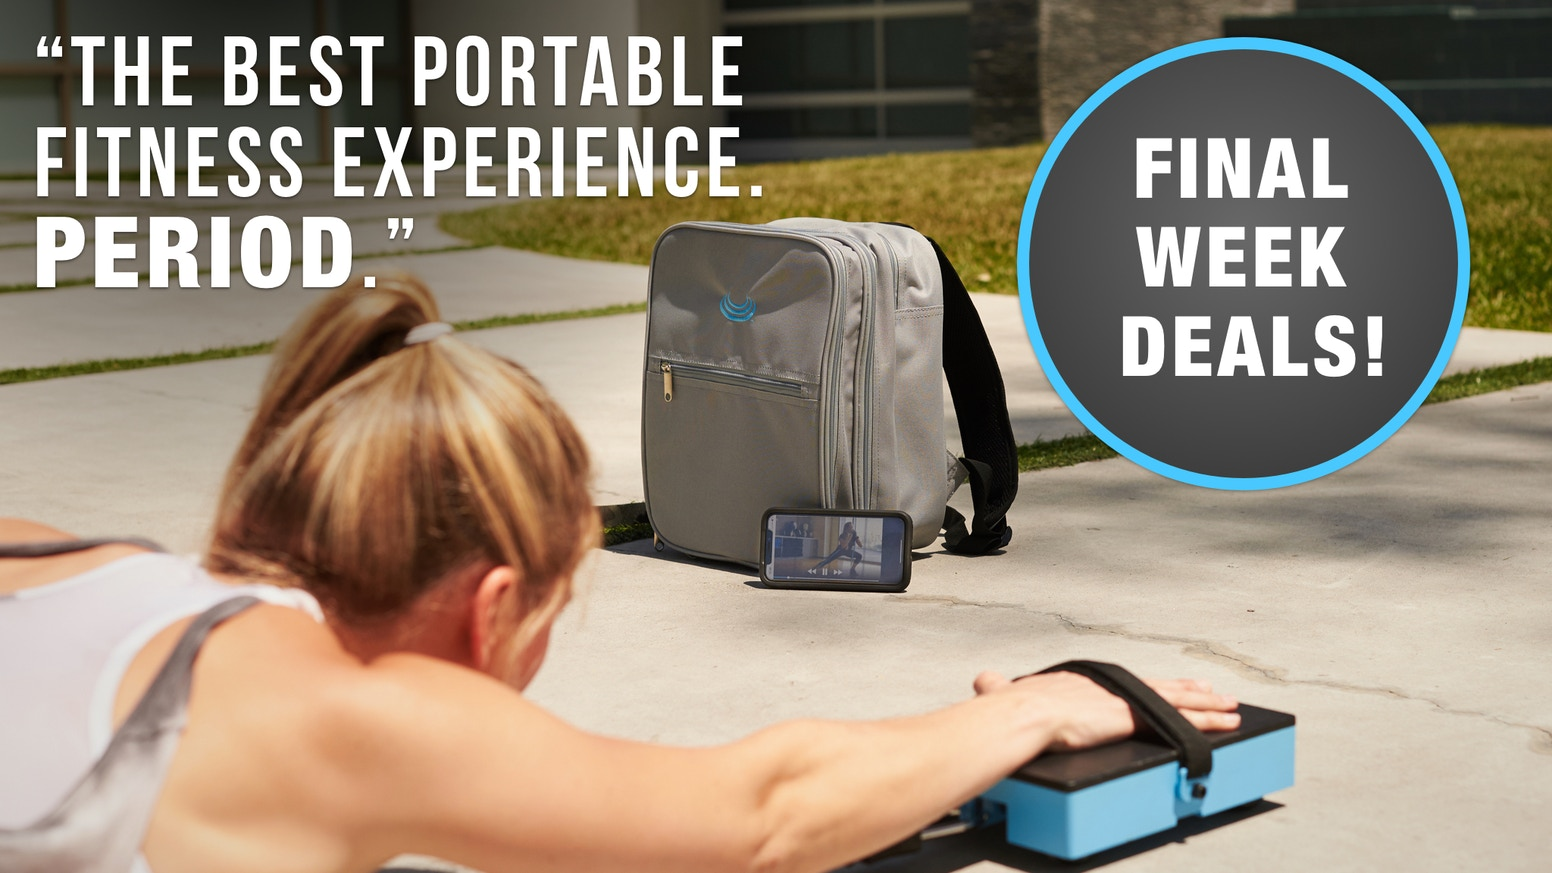 Finesse Fitness is the Ultimate Portable Fitness Bundle and App to Perfectly Fit Your Busy Lifestyle. From the Makers of Somasole.